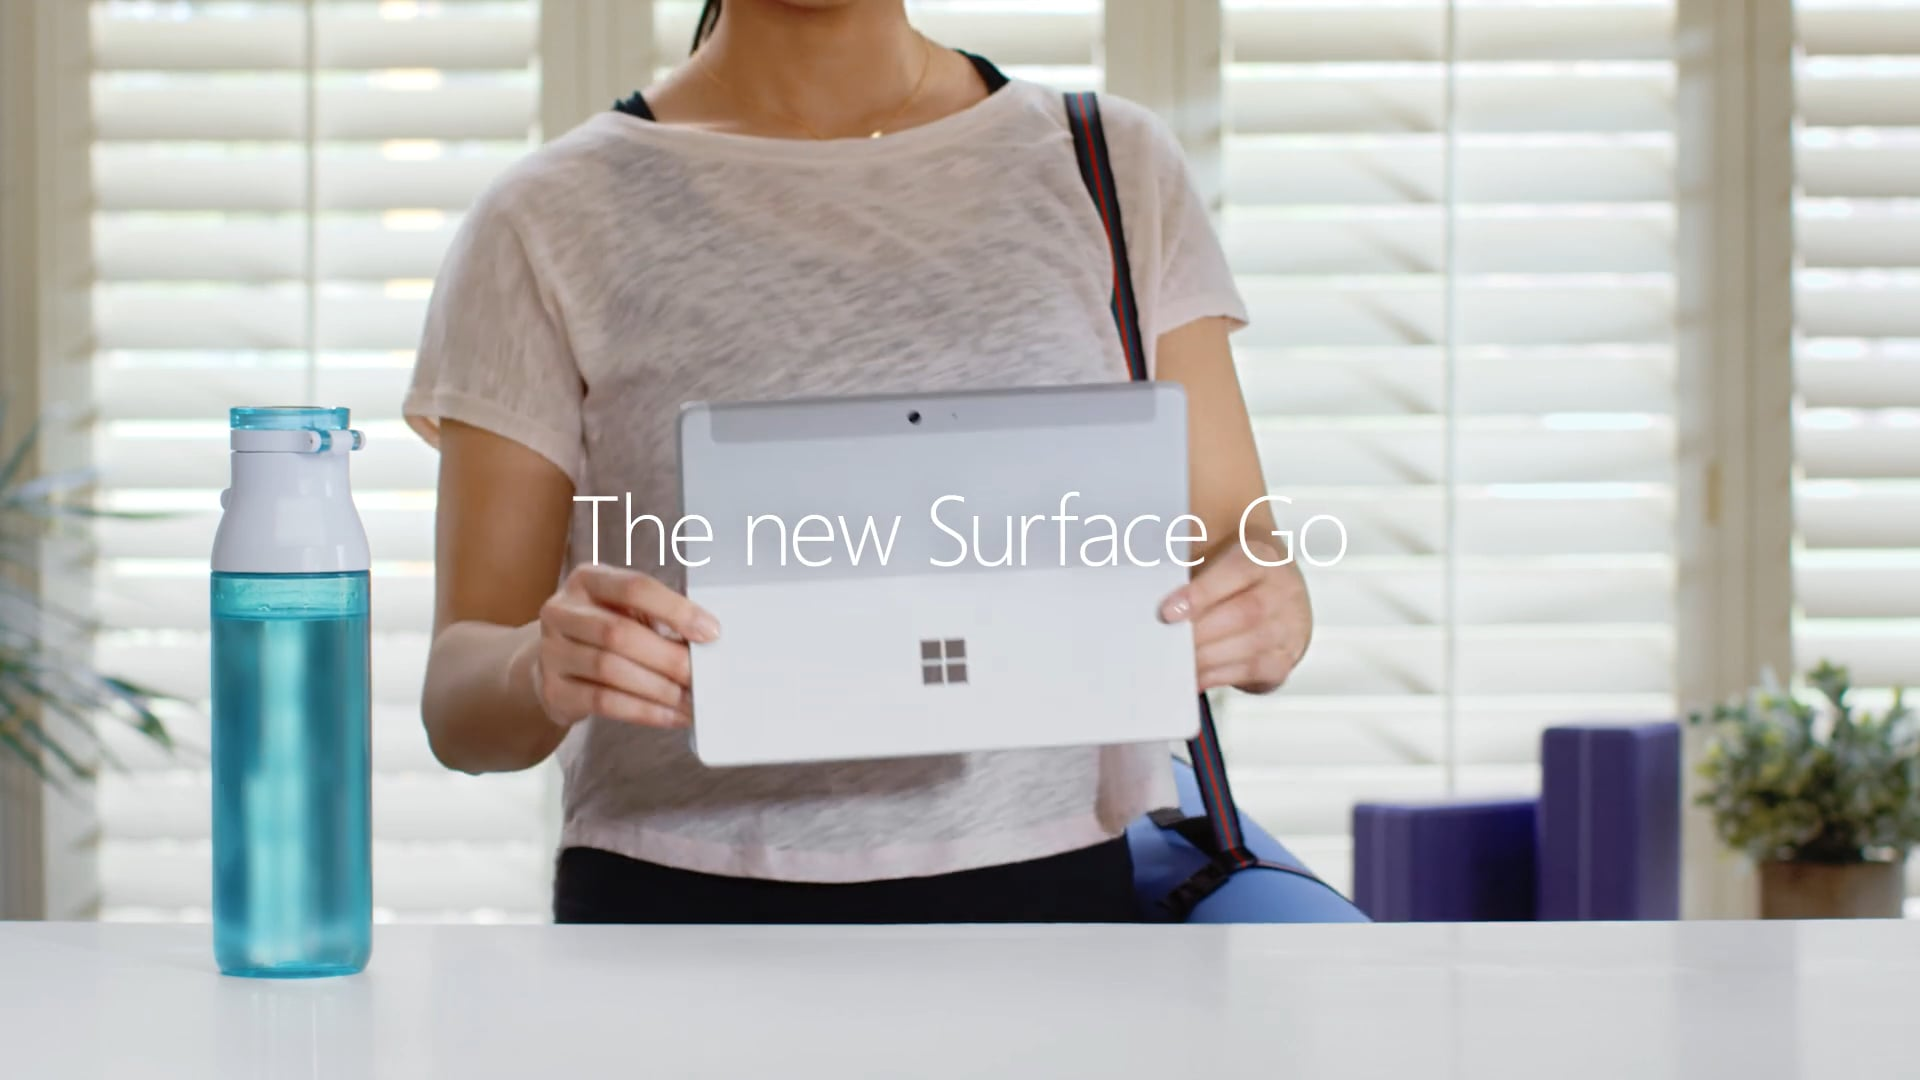 The new Surface Go: Work and play on the go